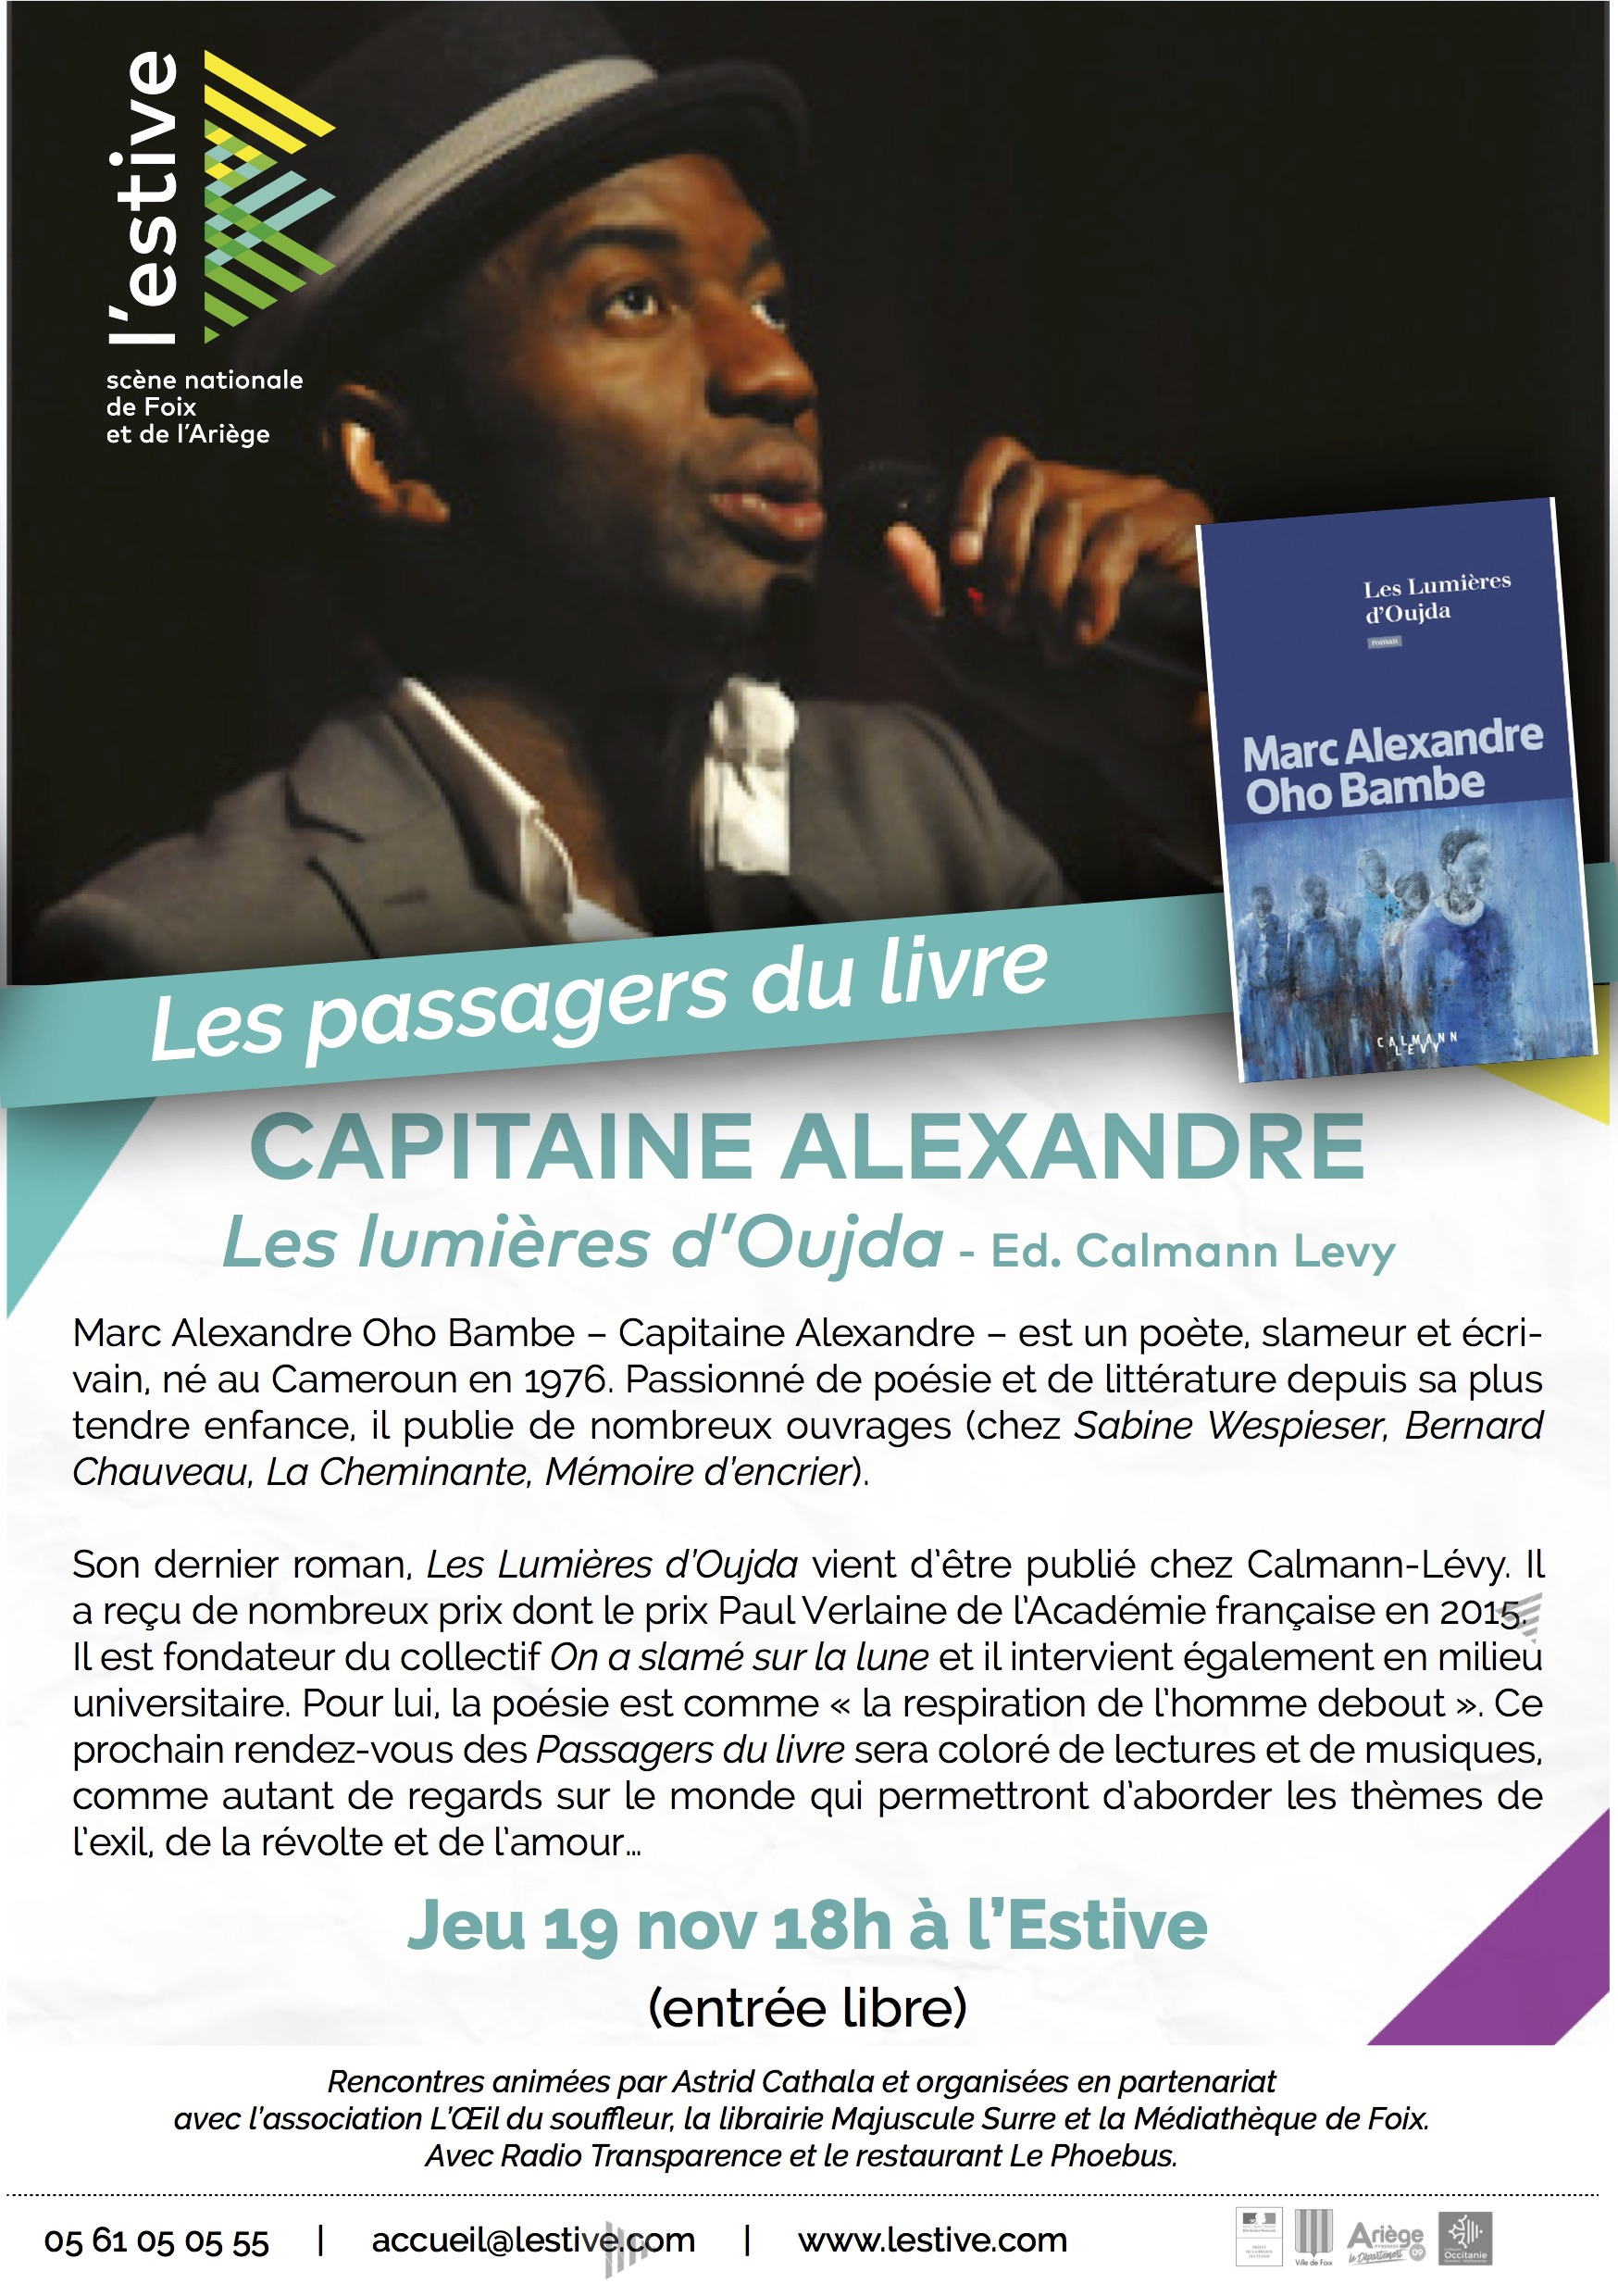 Capitaine alexandre